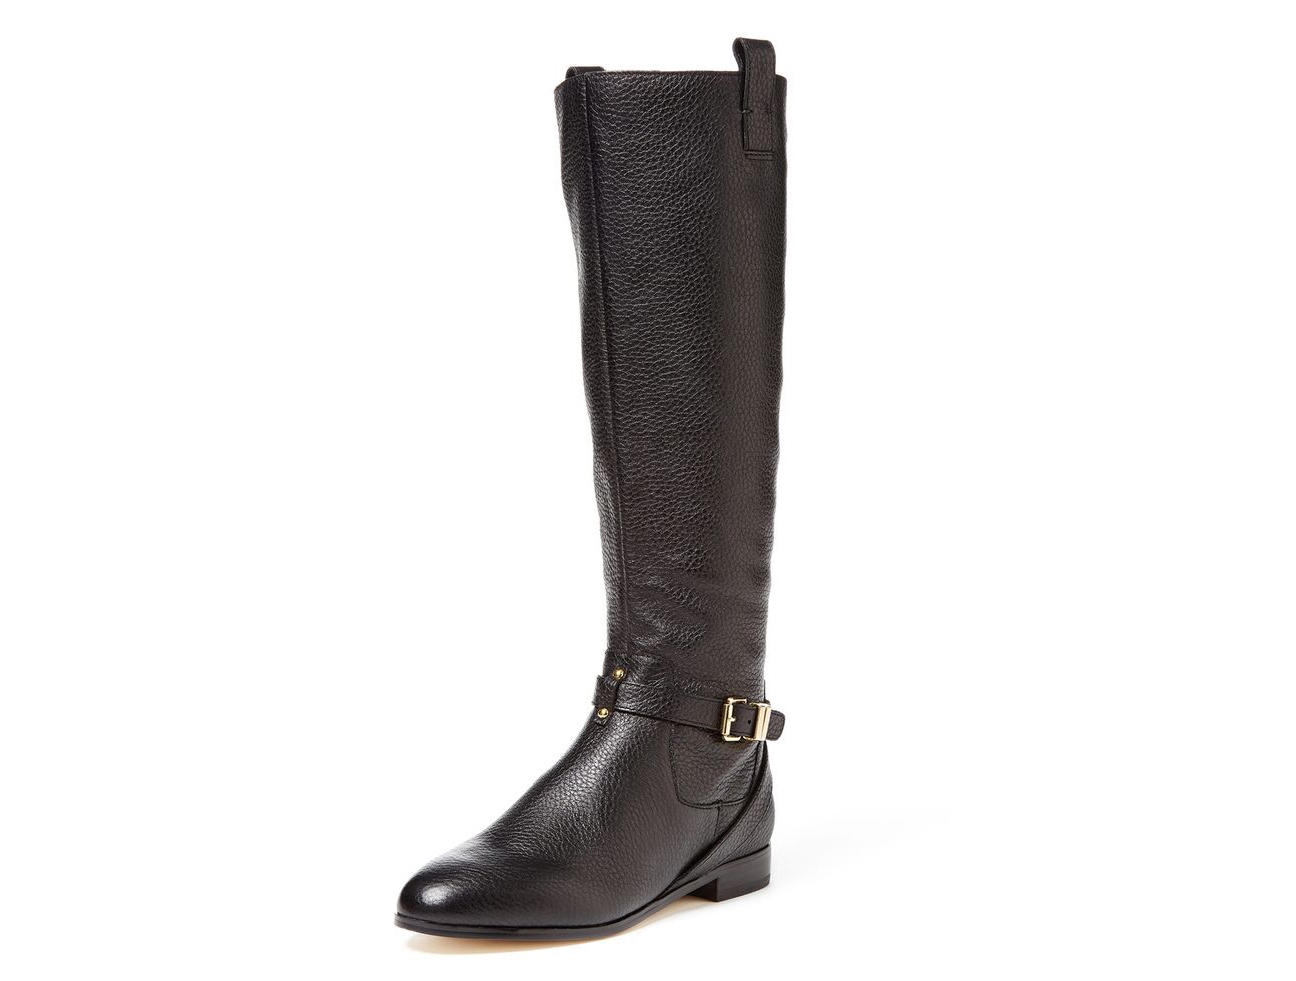 Ava & Aiden for Gilt Renee Riding Boot